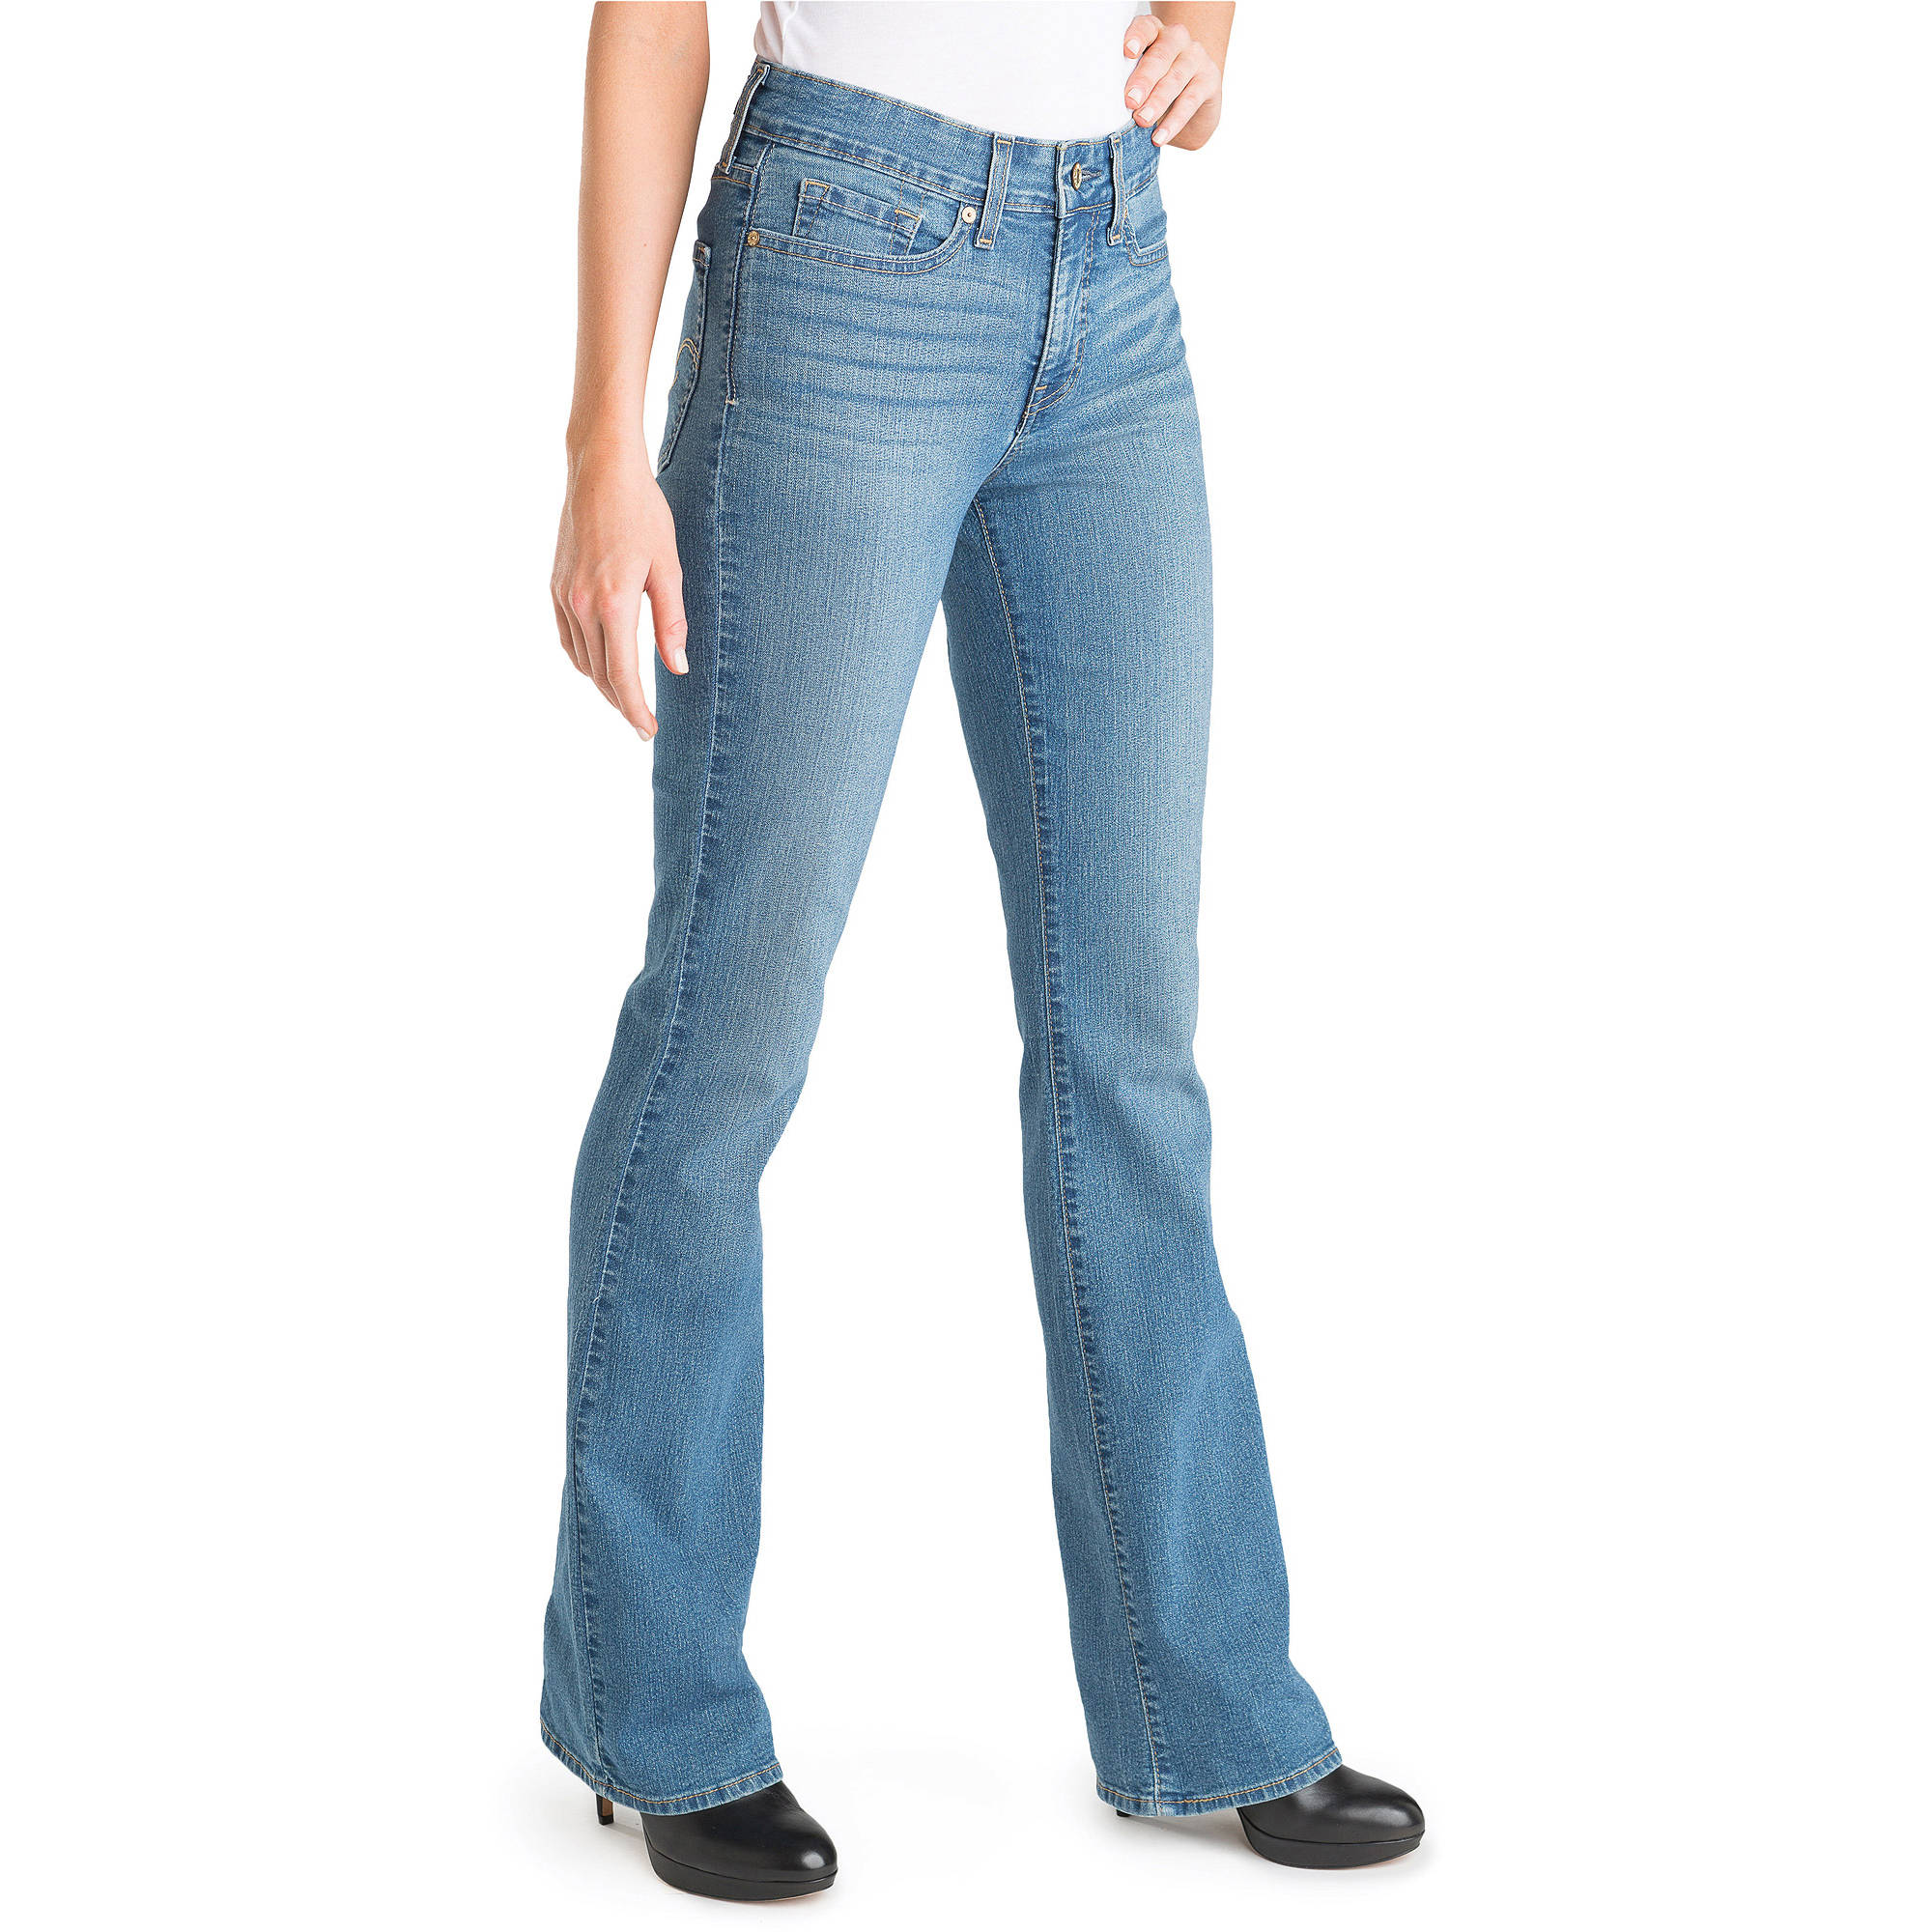 Juniors long bootcut jeans